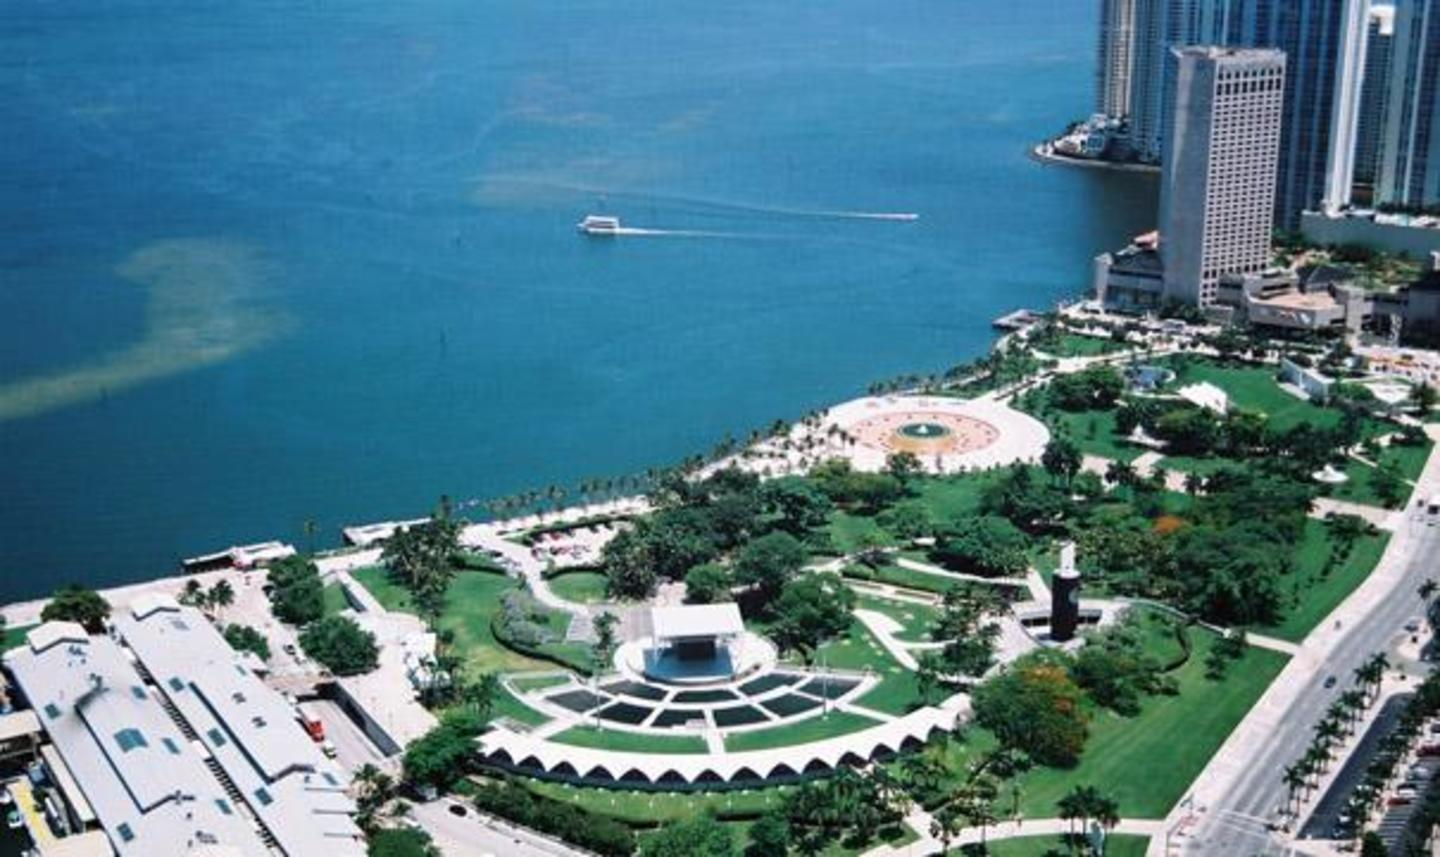 Aerial View of Bayfront Park